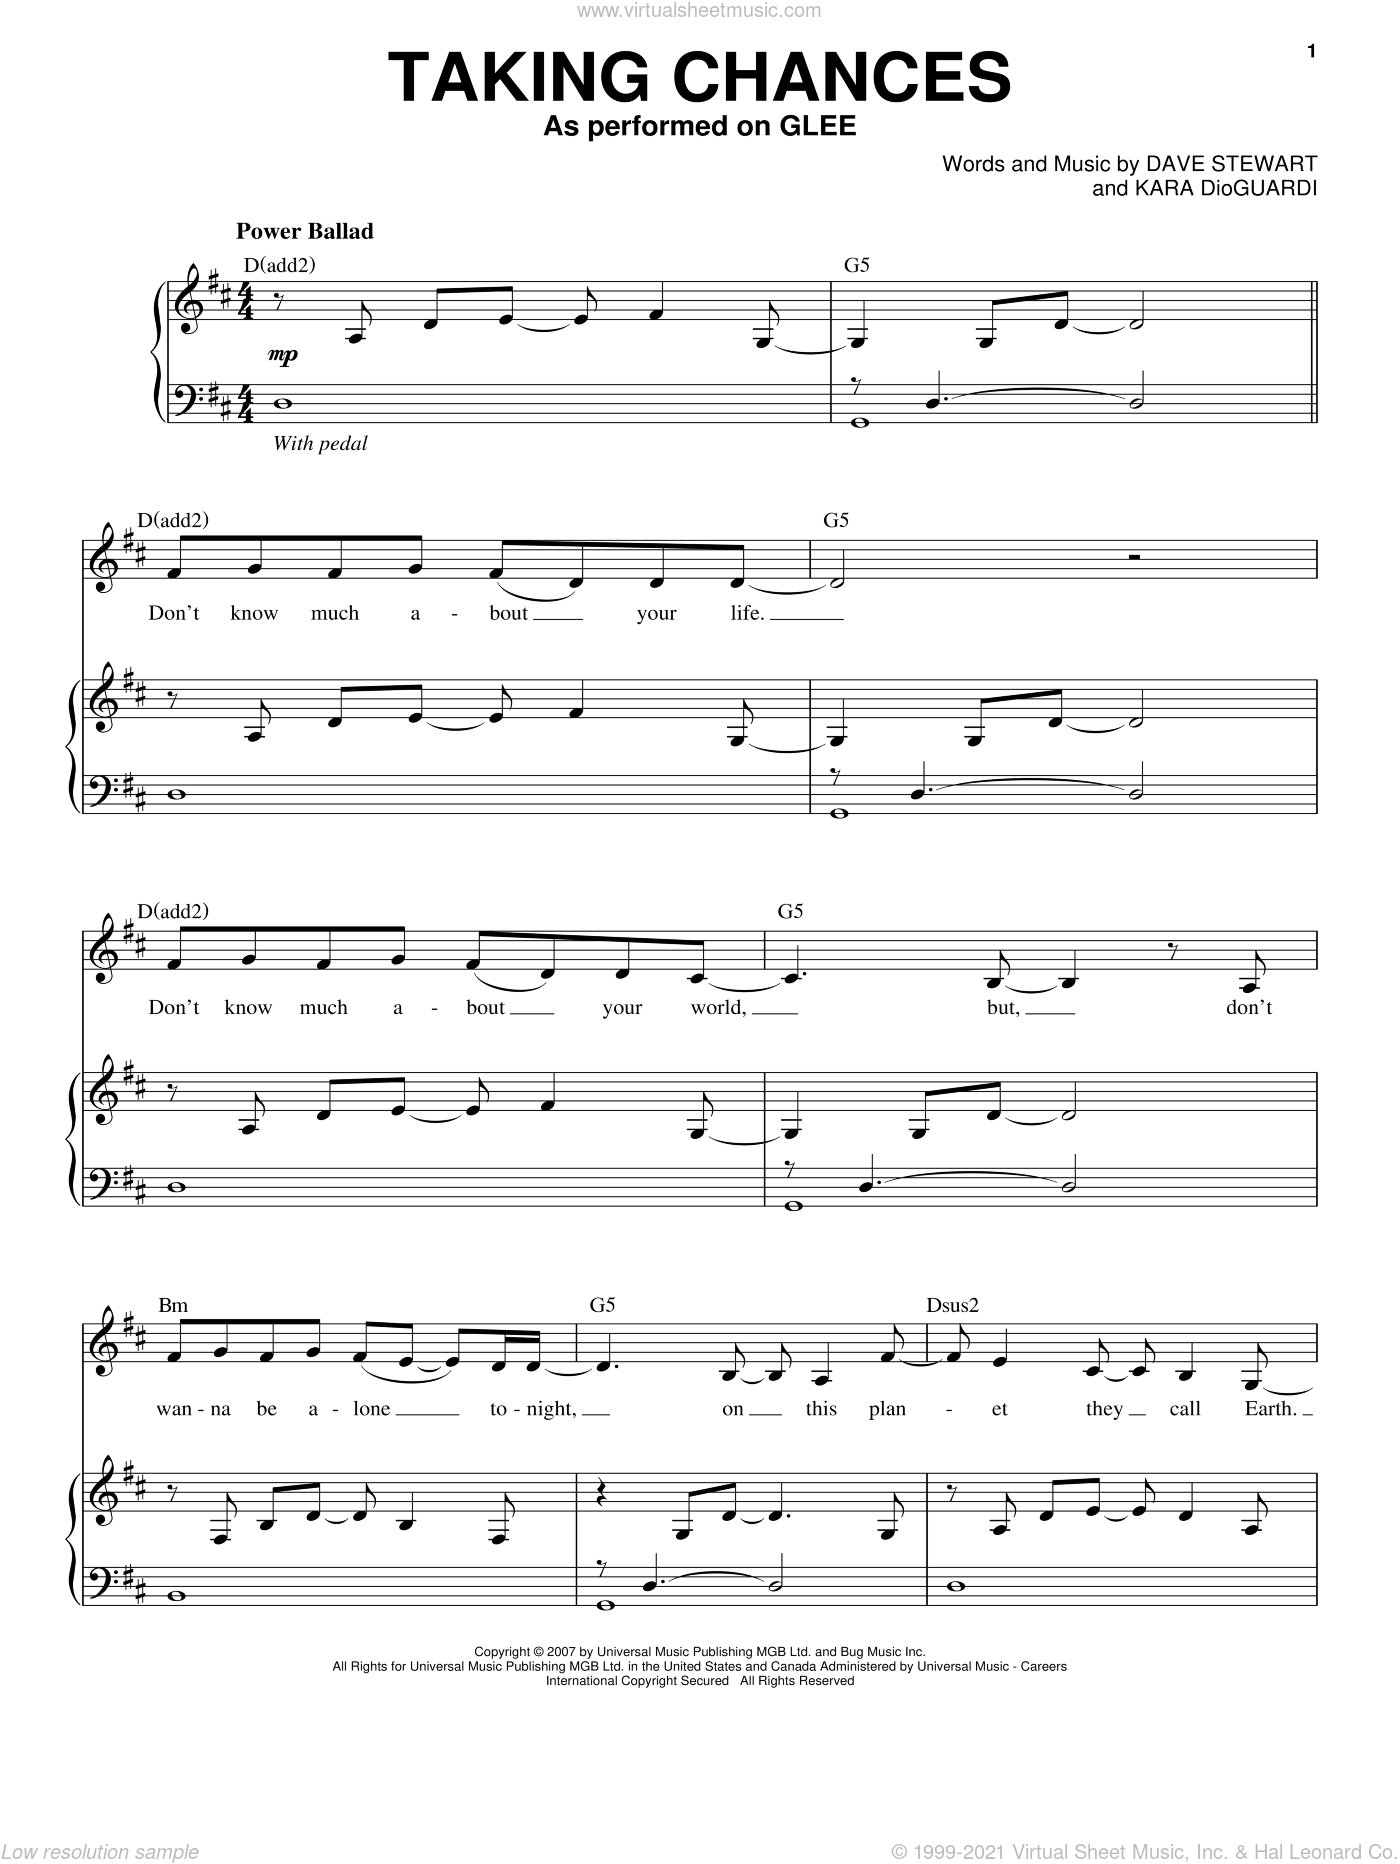 Taking Chances sheet music for voice and piano by Glee Cast, Celine Dion, Miscellaneous, Dave Stewart and Kara DioGuardi, intermediate voice. Score Image Preview.